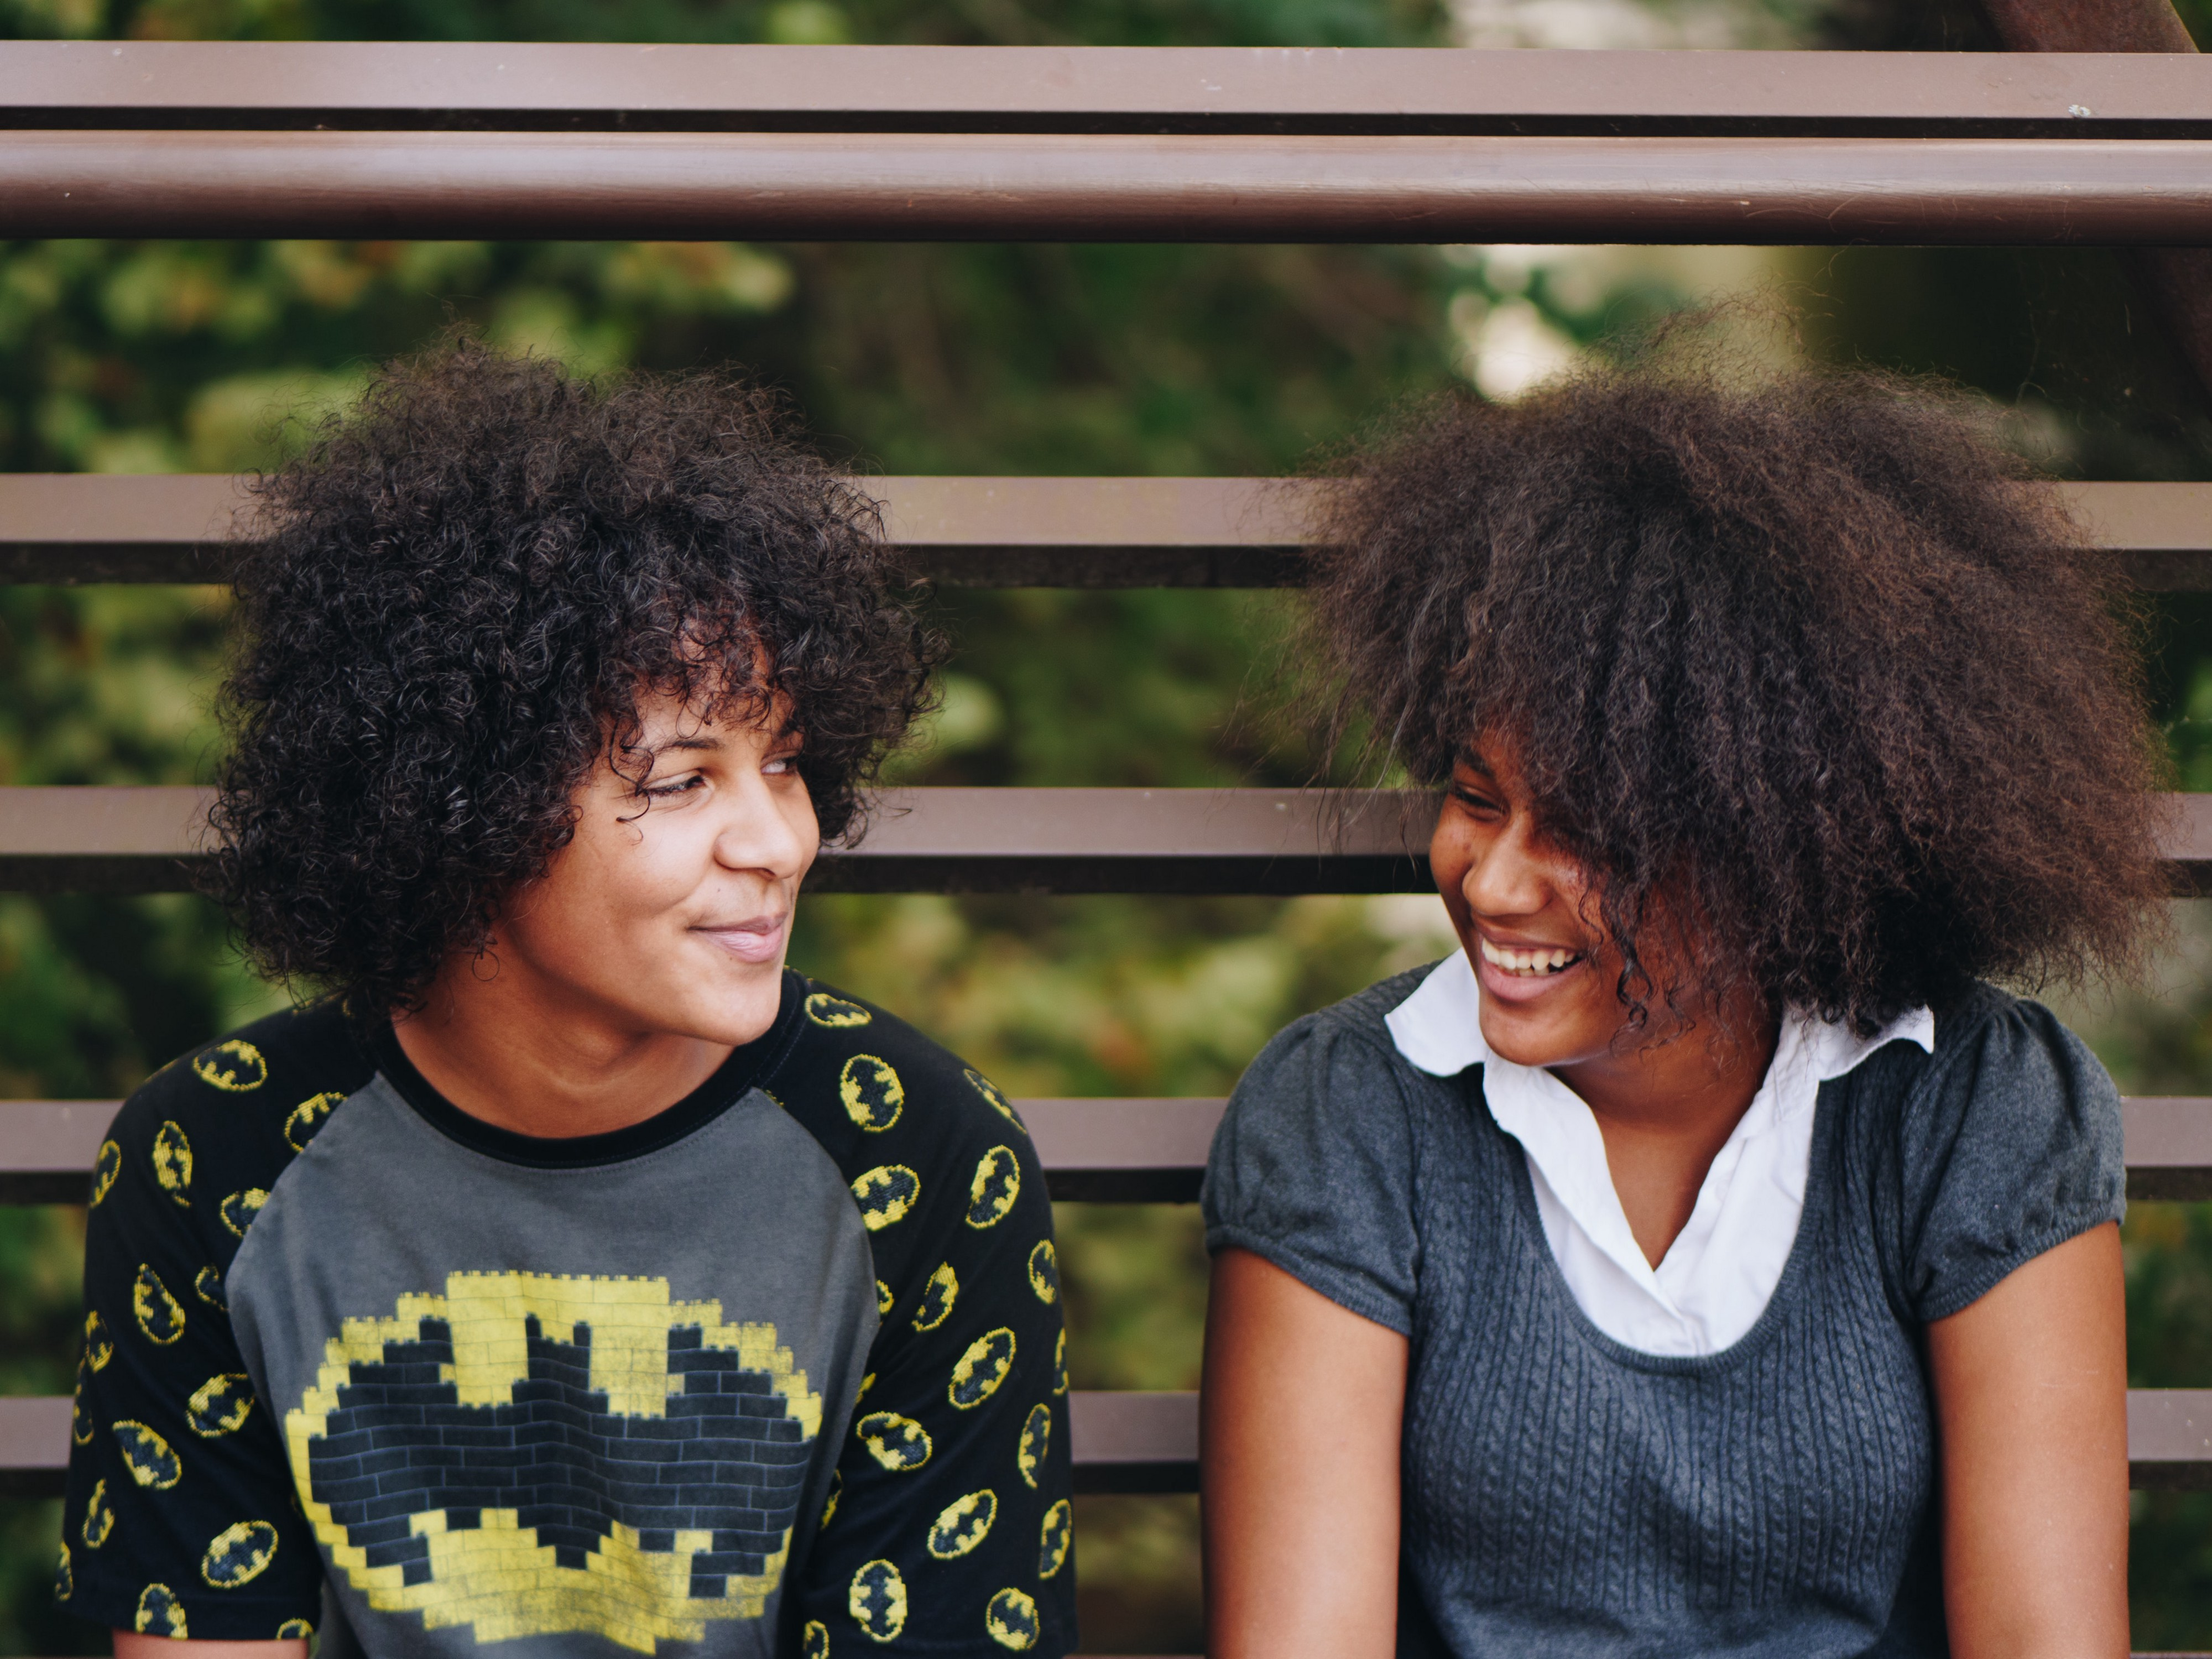 Two teenagers sitting on bleachers, smiling at each other.